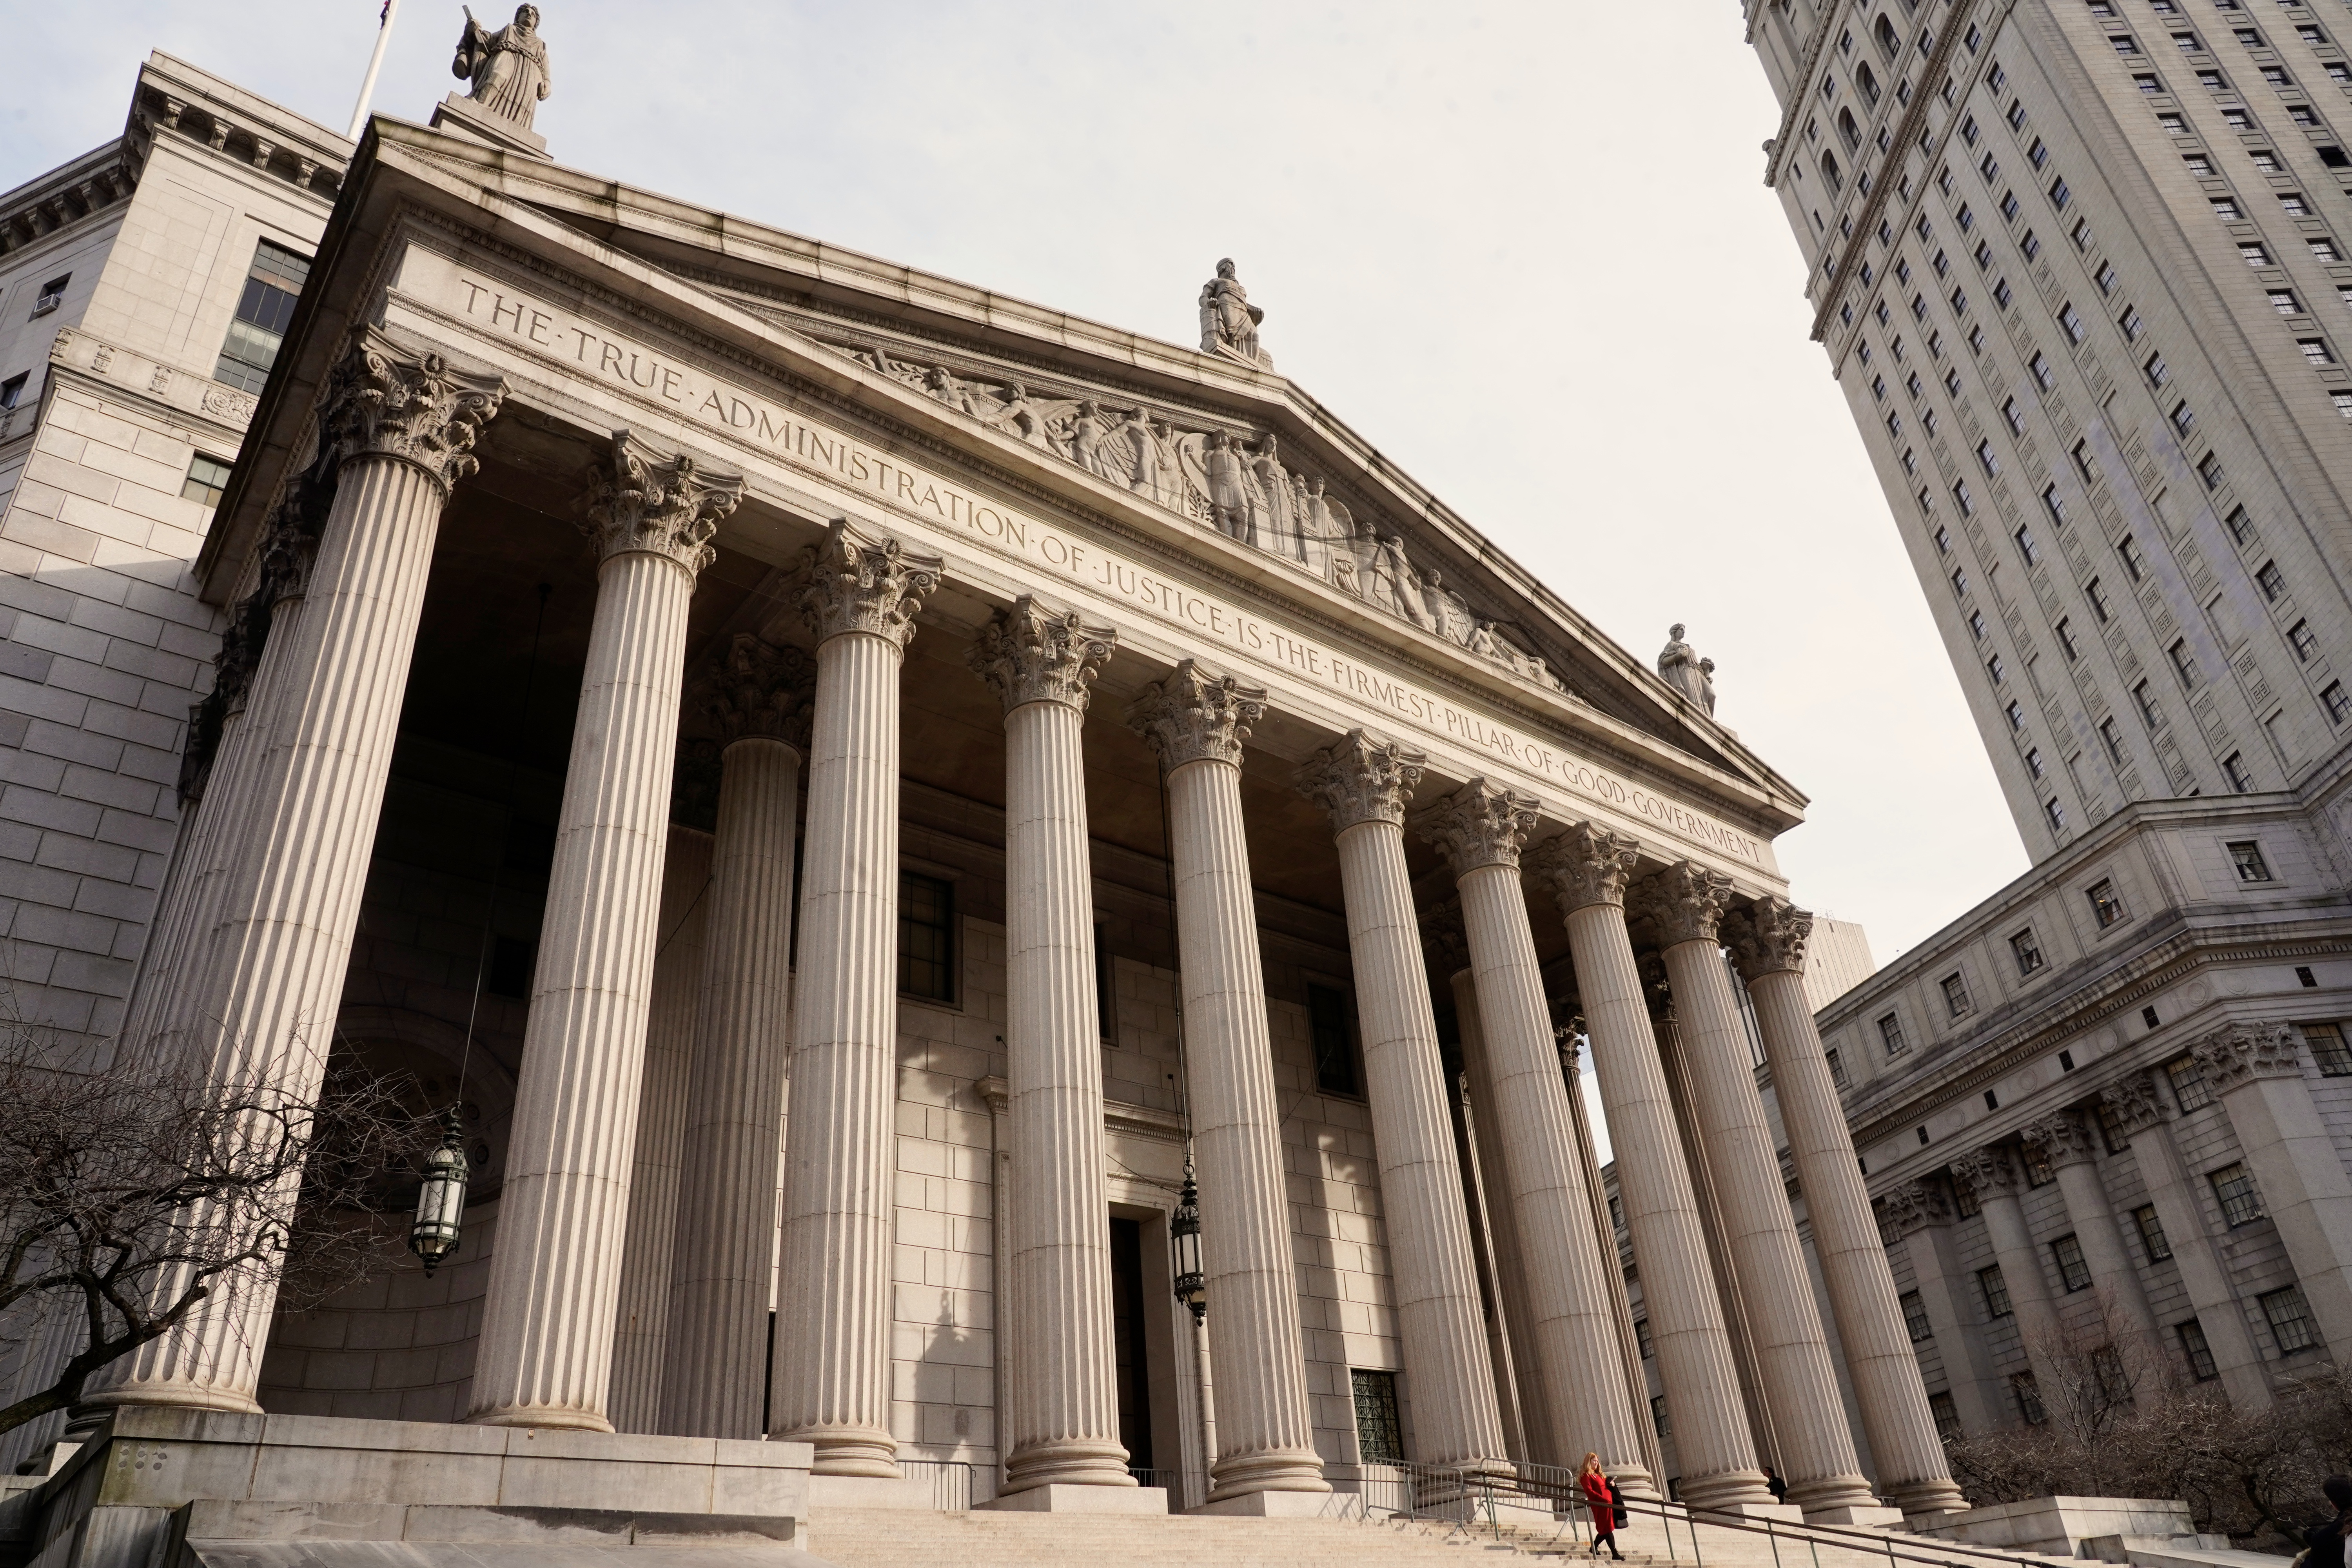 Exterior picture of New York County Supreme Court